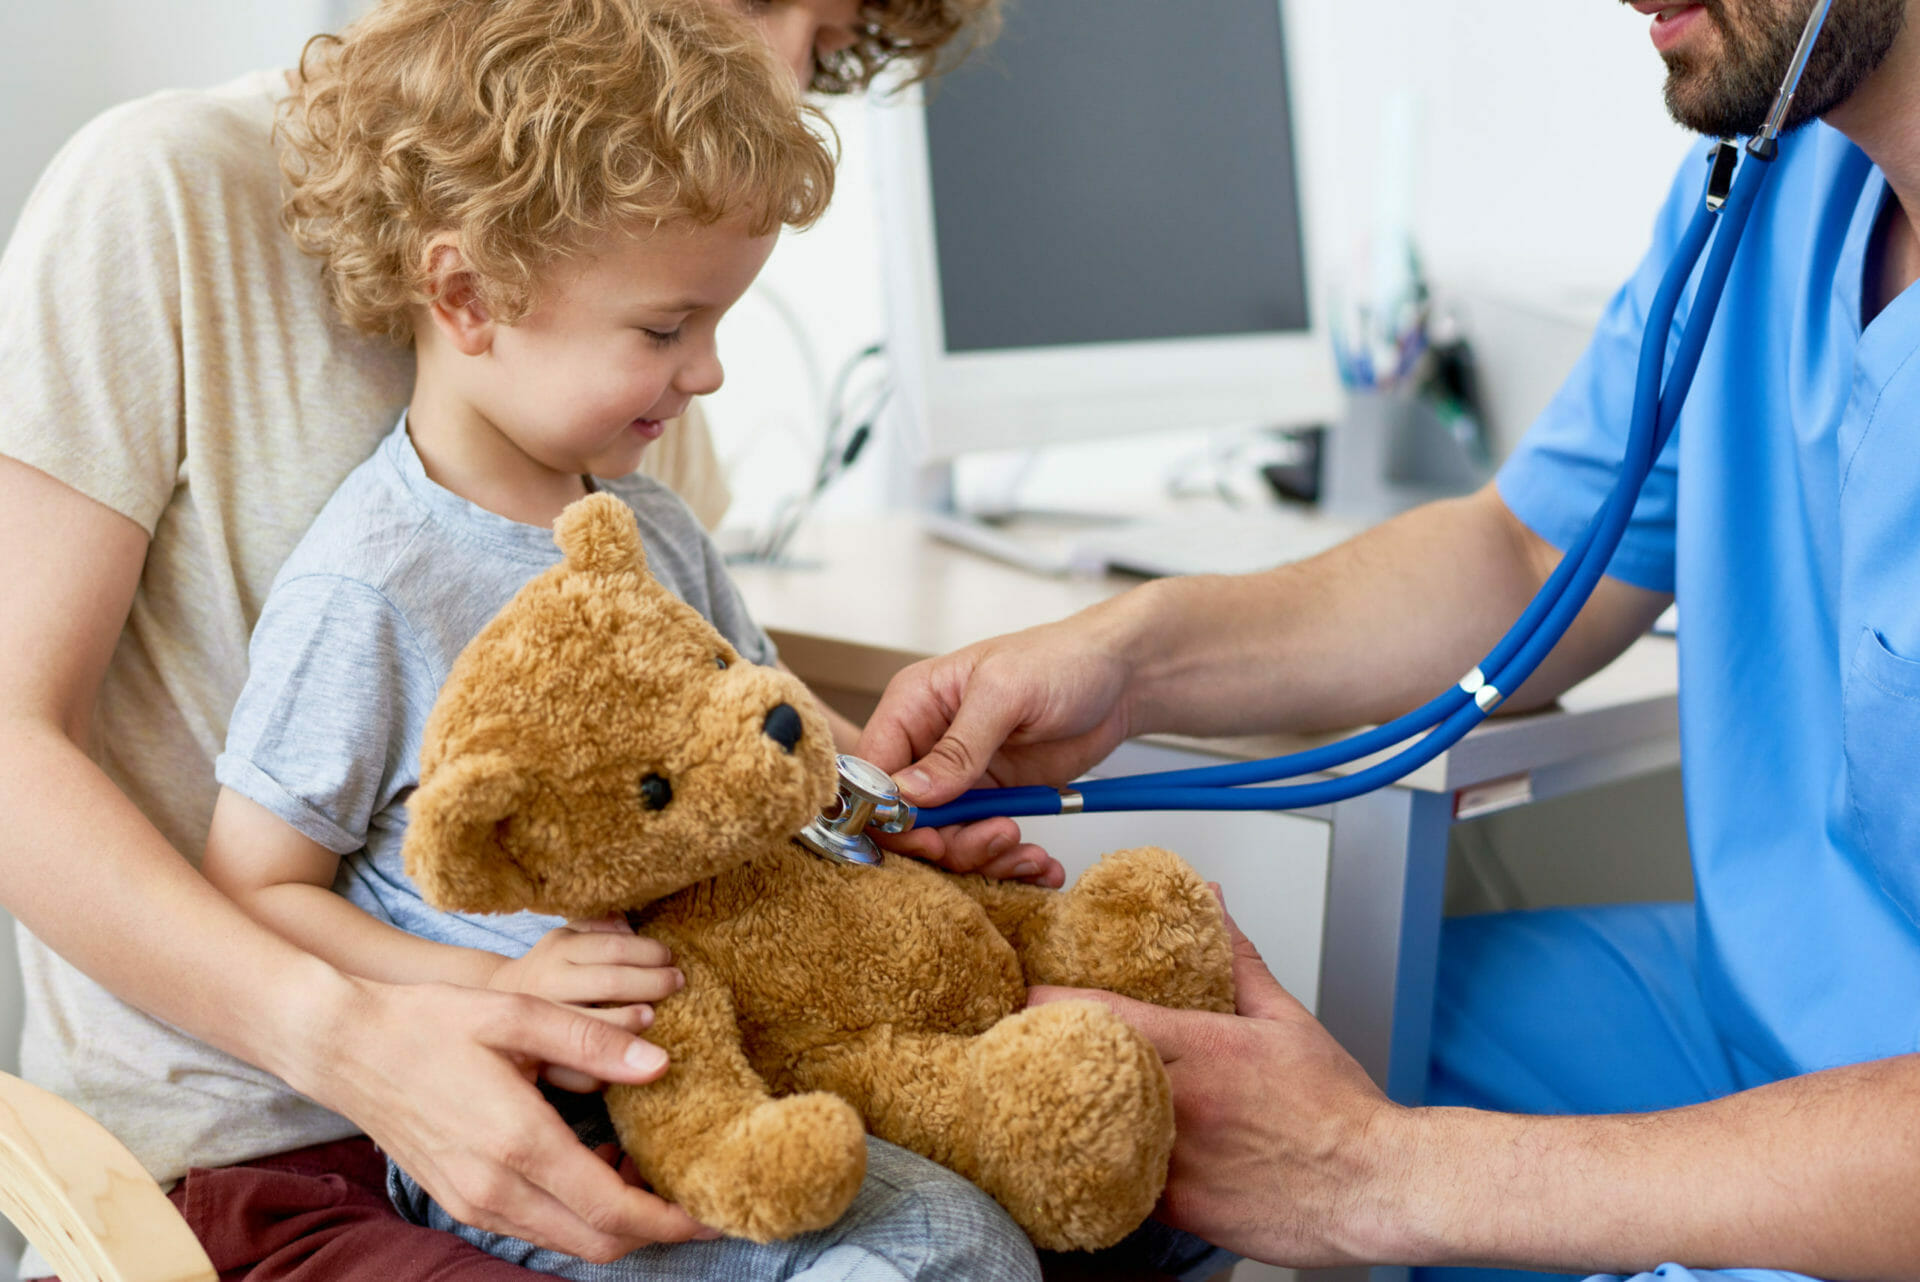 Portrait of adorable curly child  sitting on mothers lap in doctors office holding teddy bear toy, with pediatrician listening to heartbeat using stethoscope